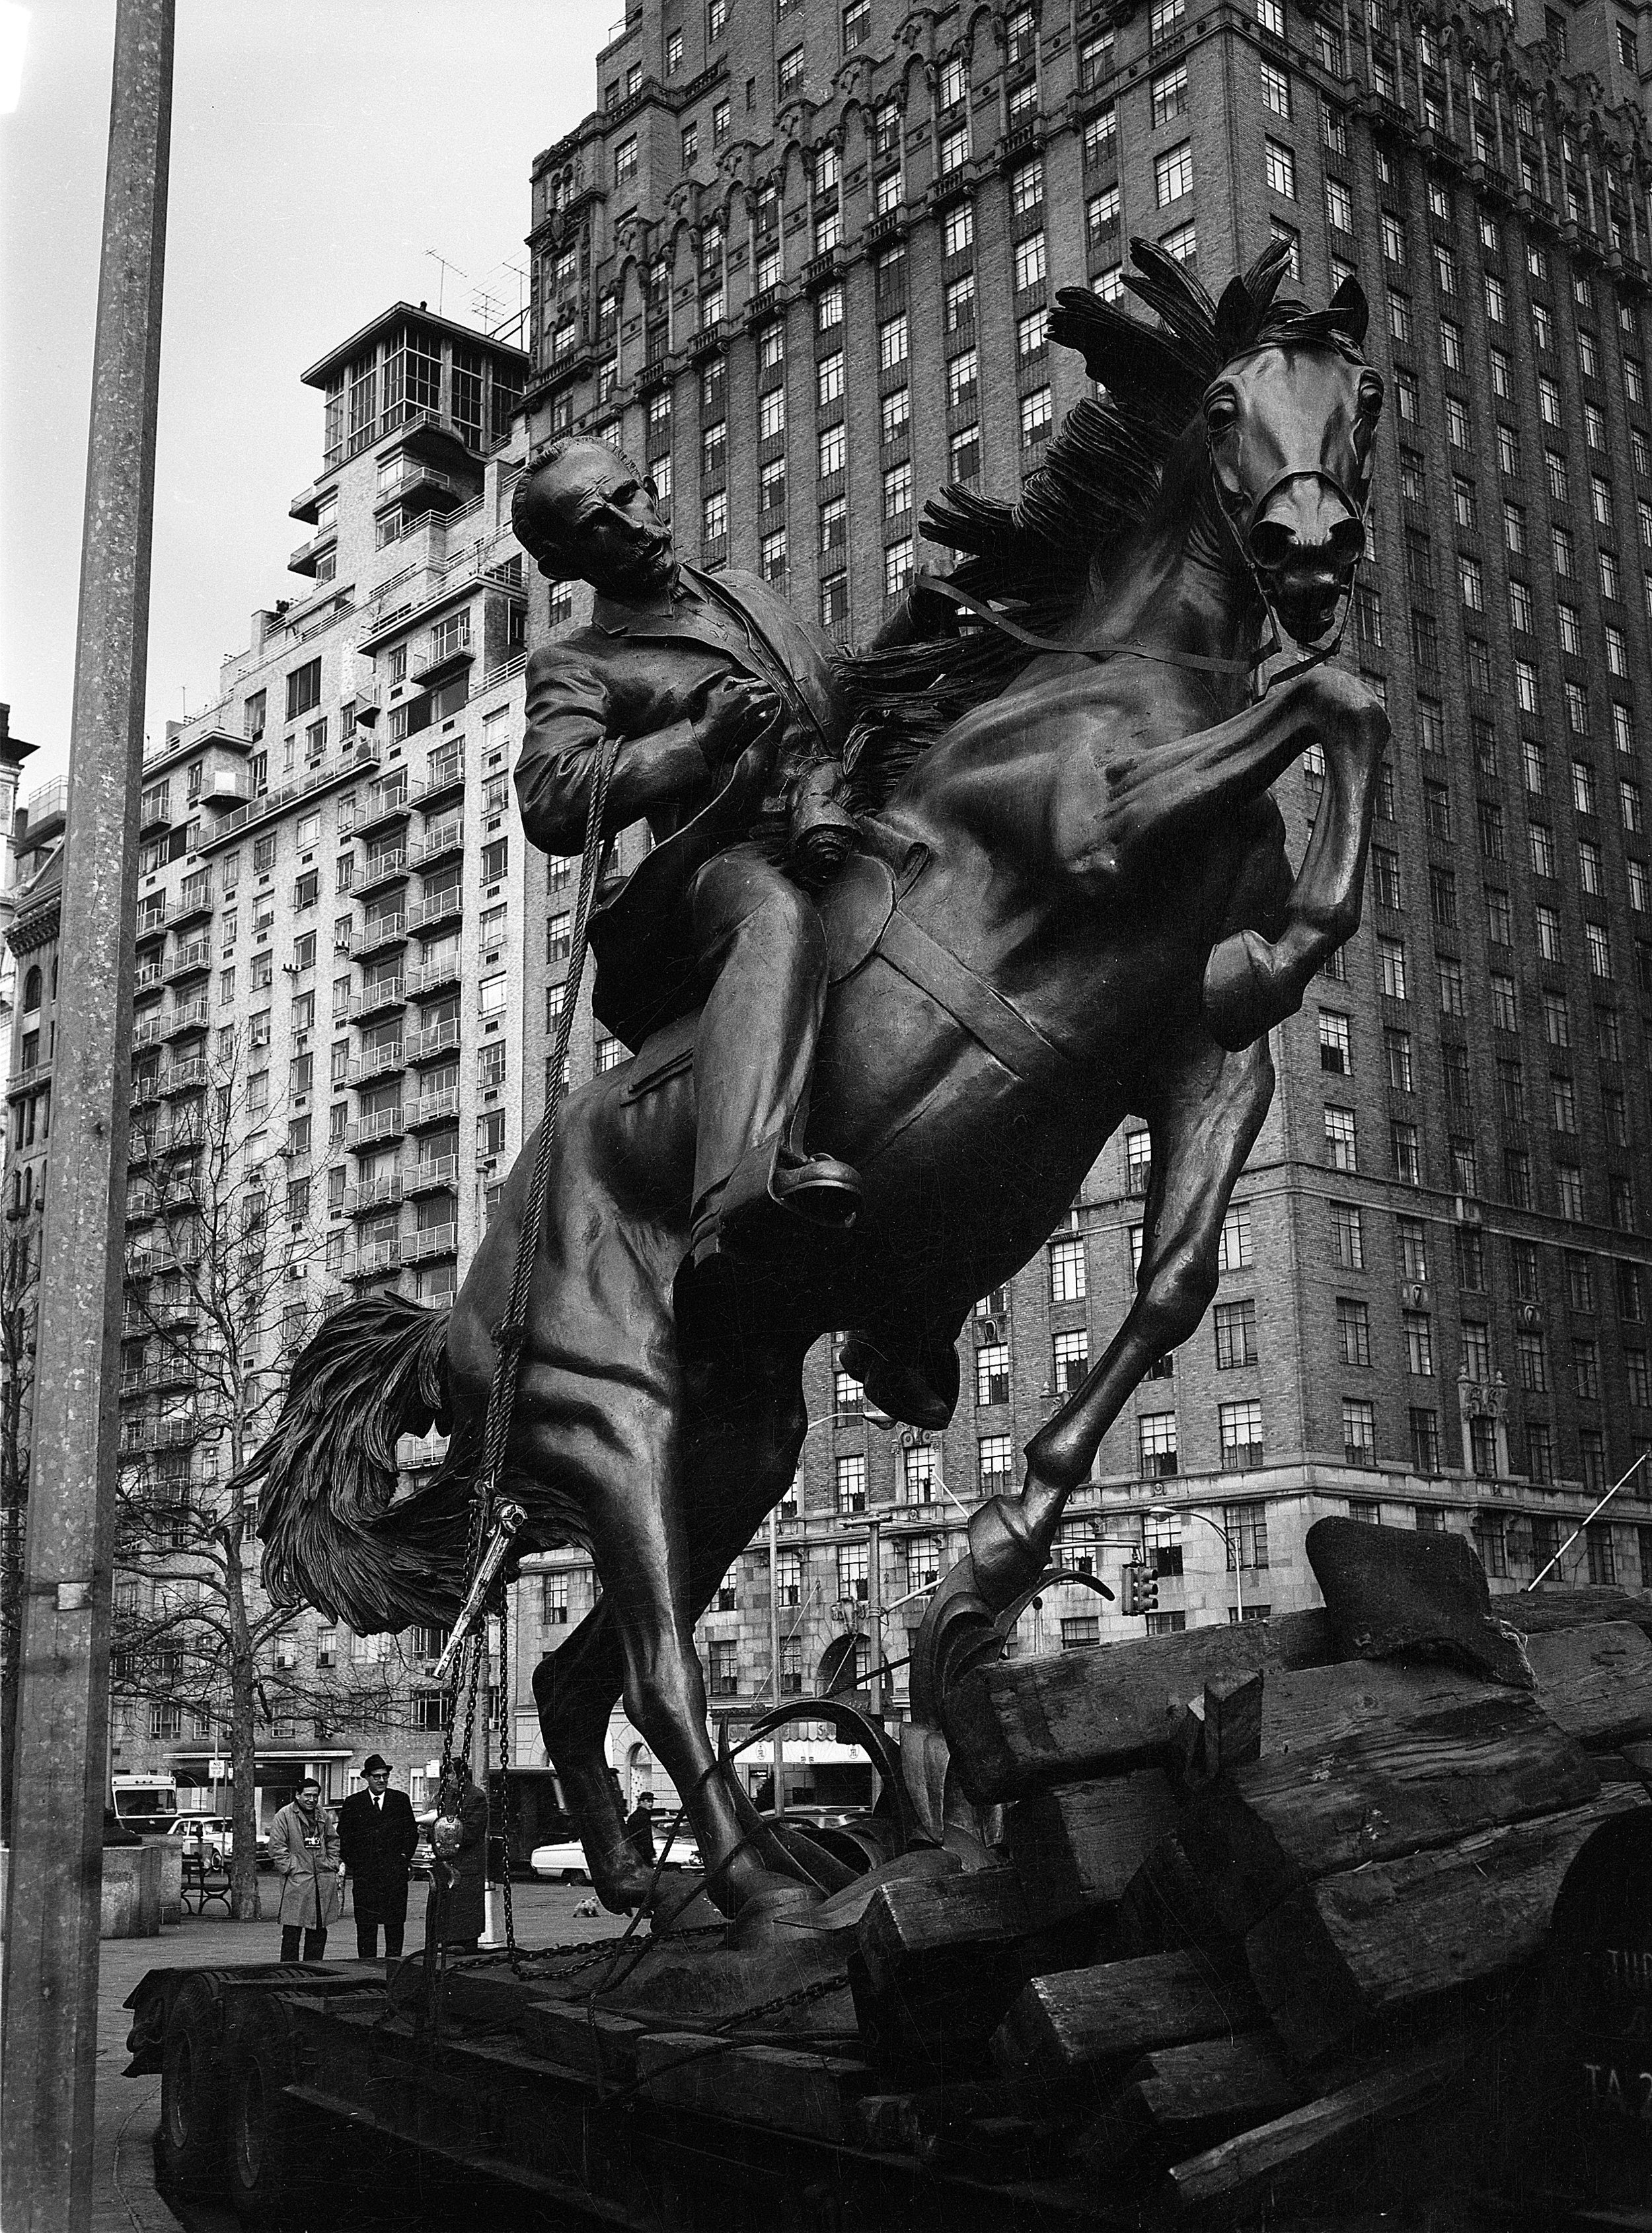 Installation of the Statue of José Martí in Central Park   1965